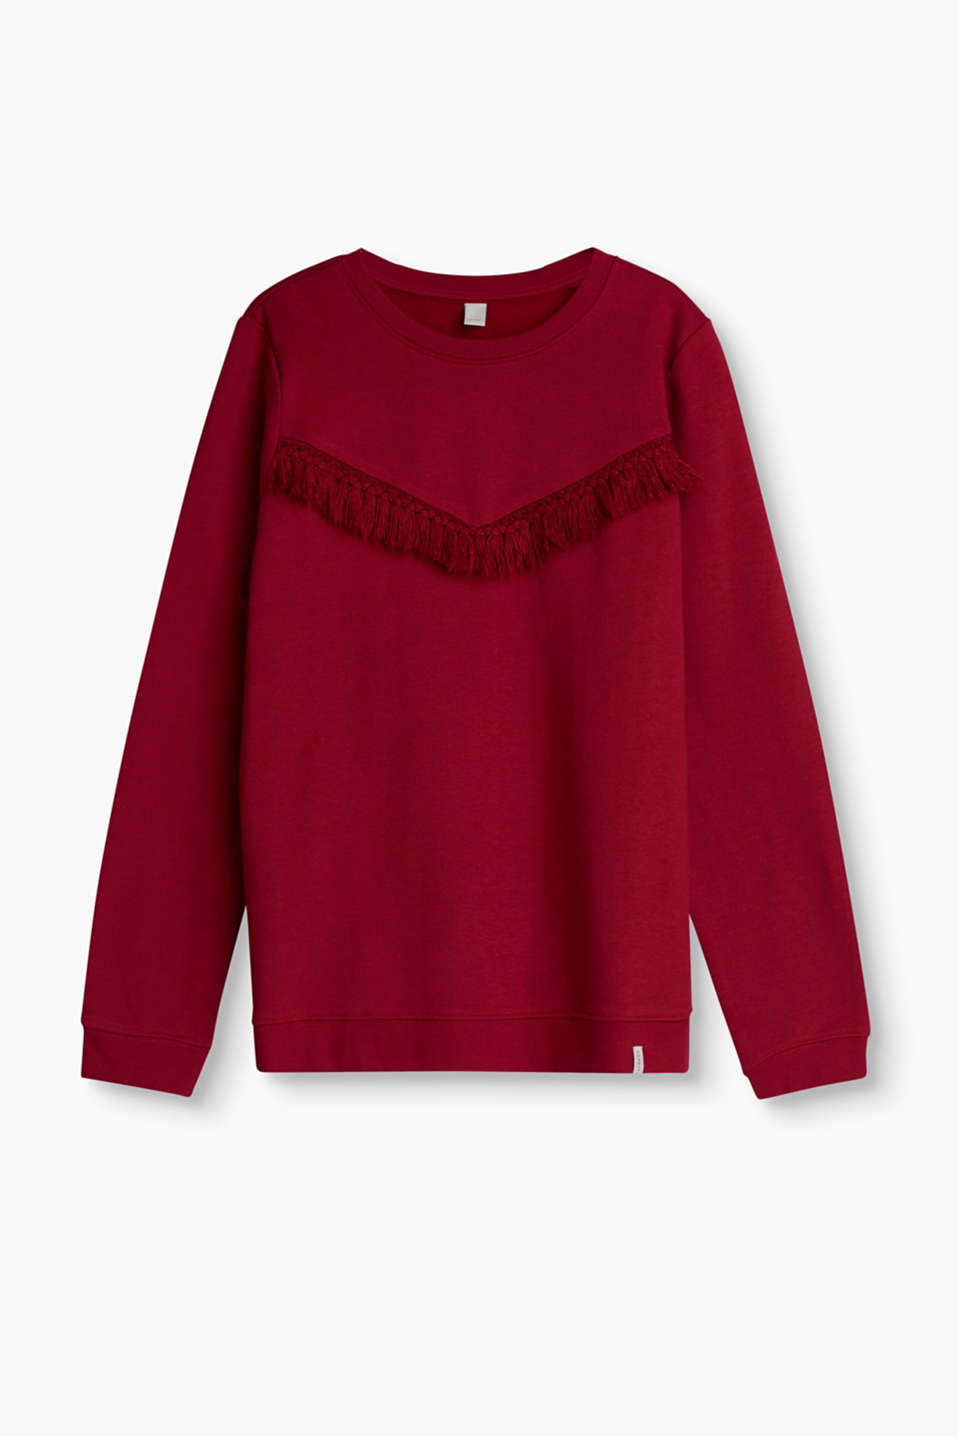 Soft sweatshirt with decorative fringing and a fluffy reverse side